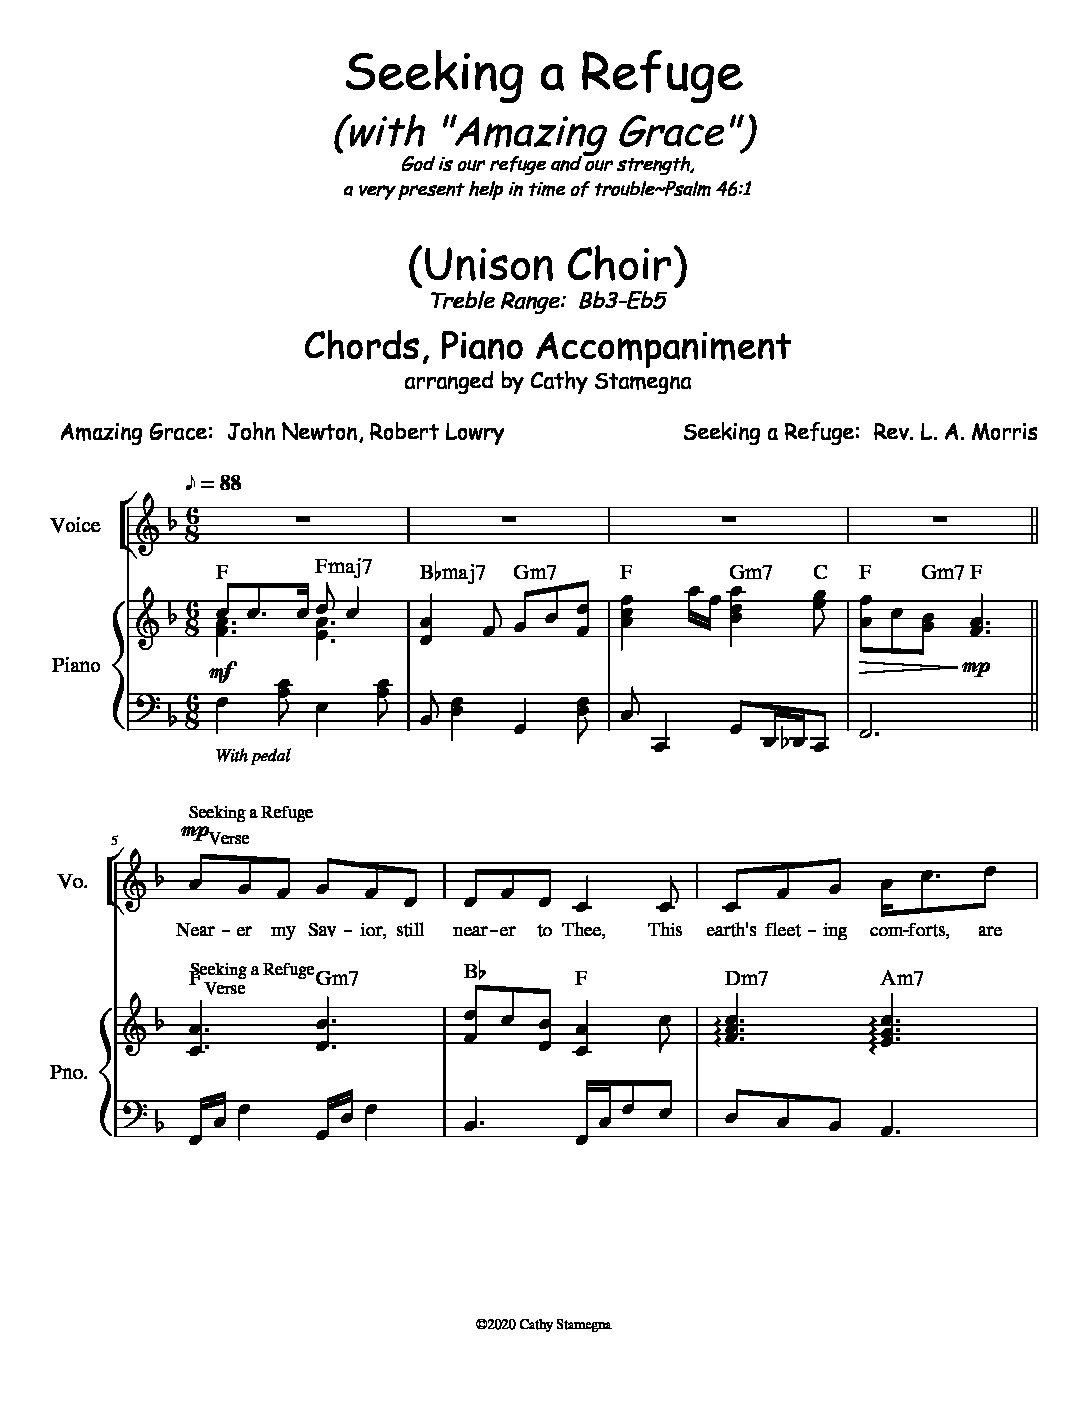 """Seeking a Refuge (with """"Amazing Grace"""") (Chords, Piano Accompaniment) for Unison, 2-Part Choir; Vocal Solo"""